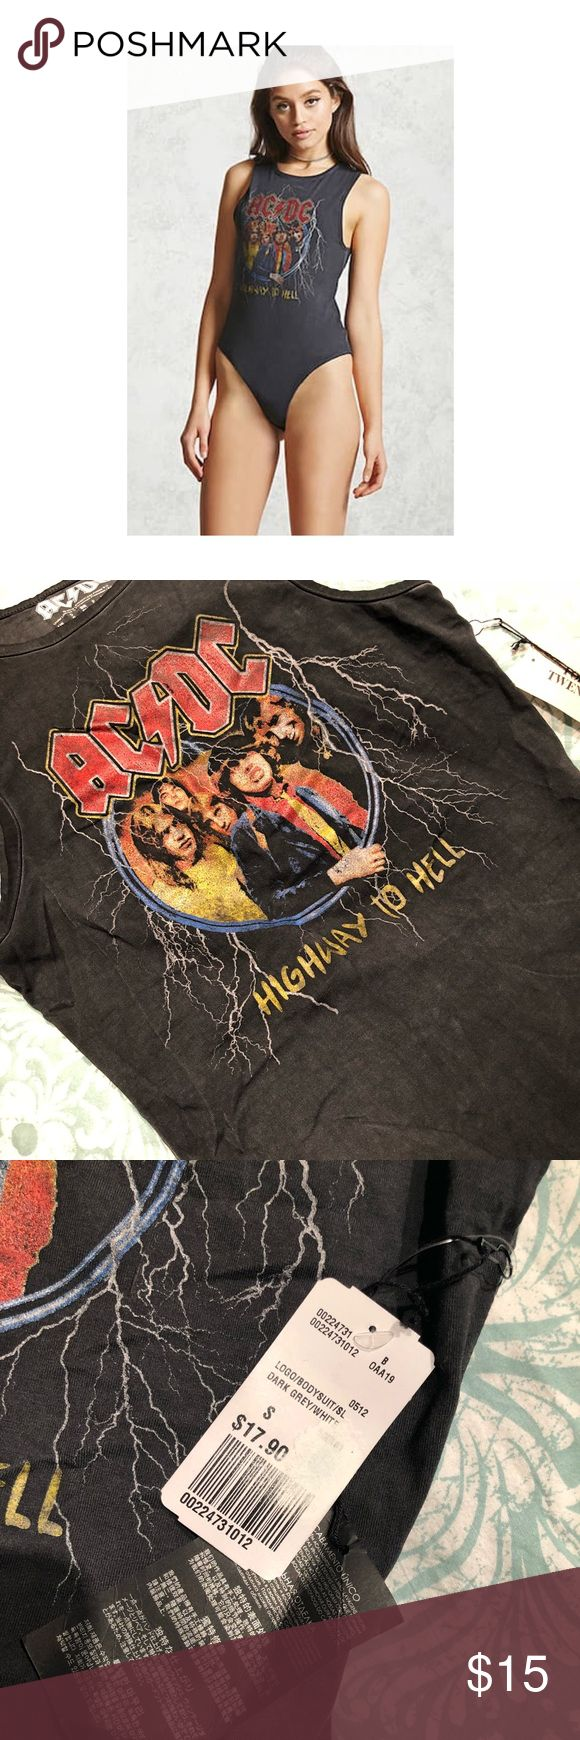 AC/DC Band Bodysuit Never worn with tags attached AC/DC Band Bodysuit, purchased for Coachella but didn't wear. Comes from smoke free home, definitely in need of a new loving closet! 🖤 Forever 21 Tops Muscle Tees